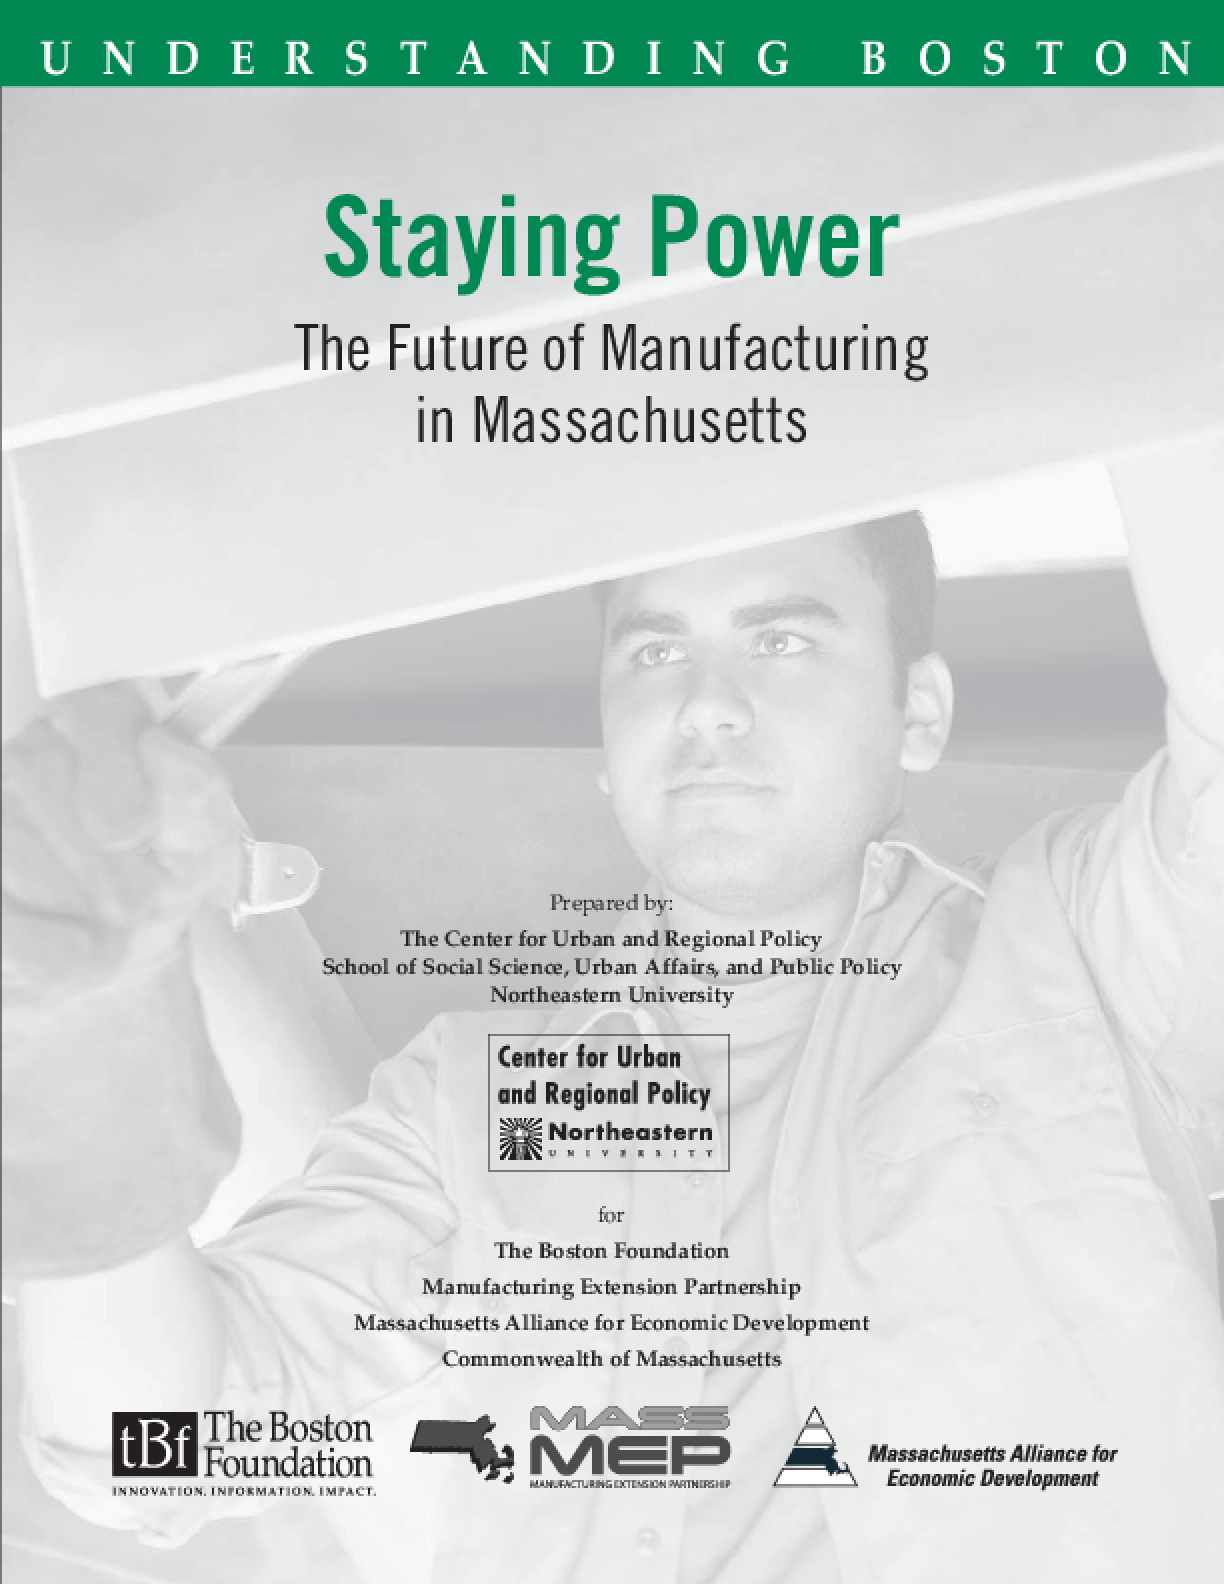 Staying Power: The Future of Manufacturing in Massachusetts